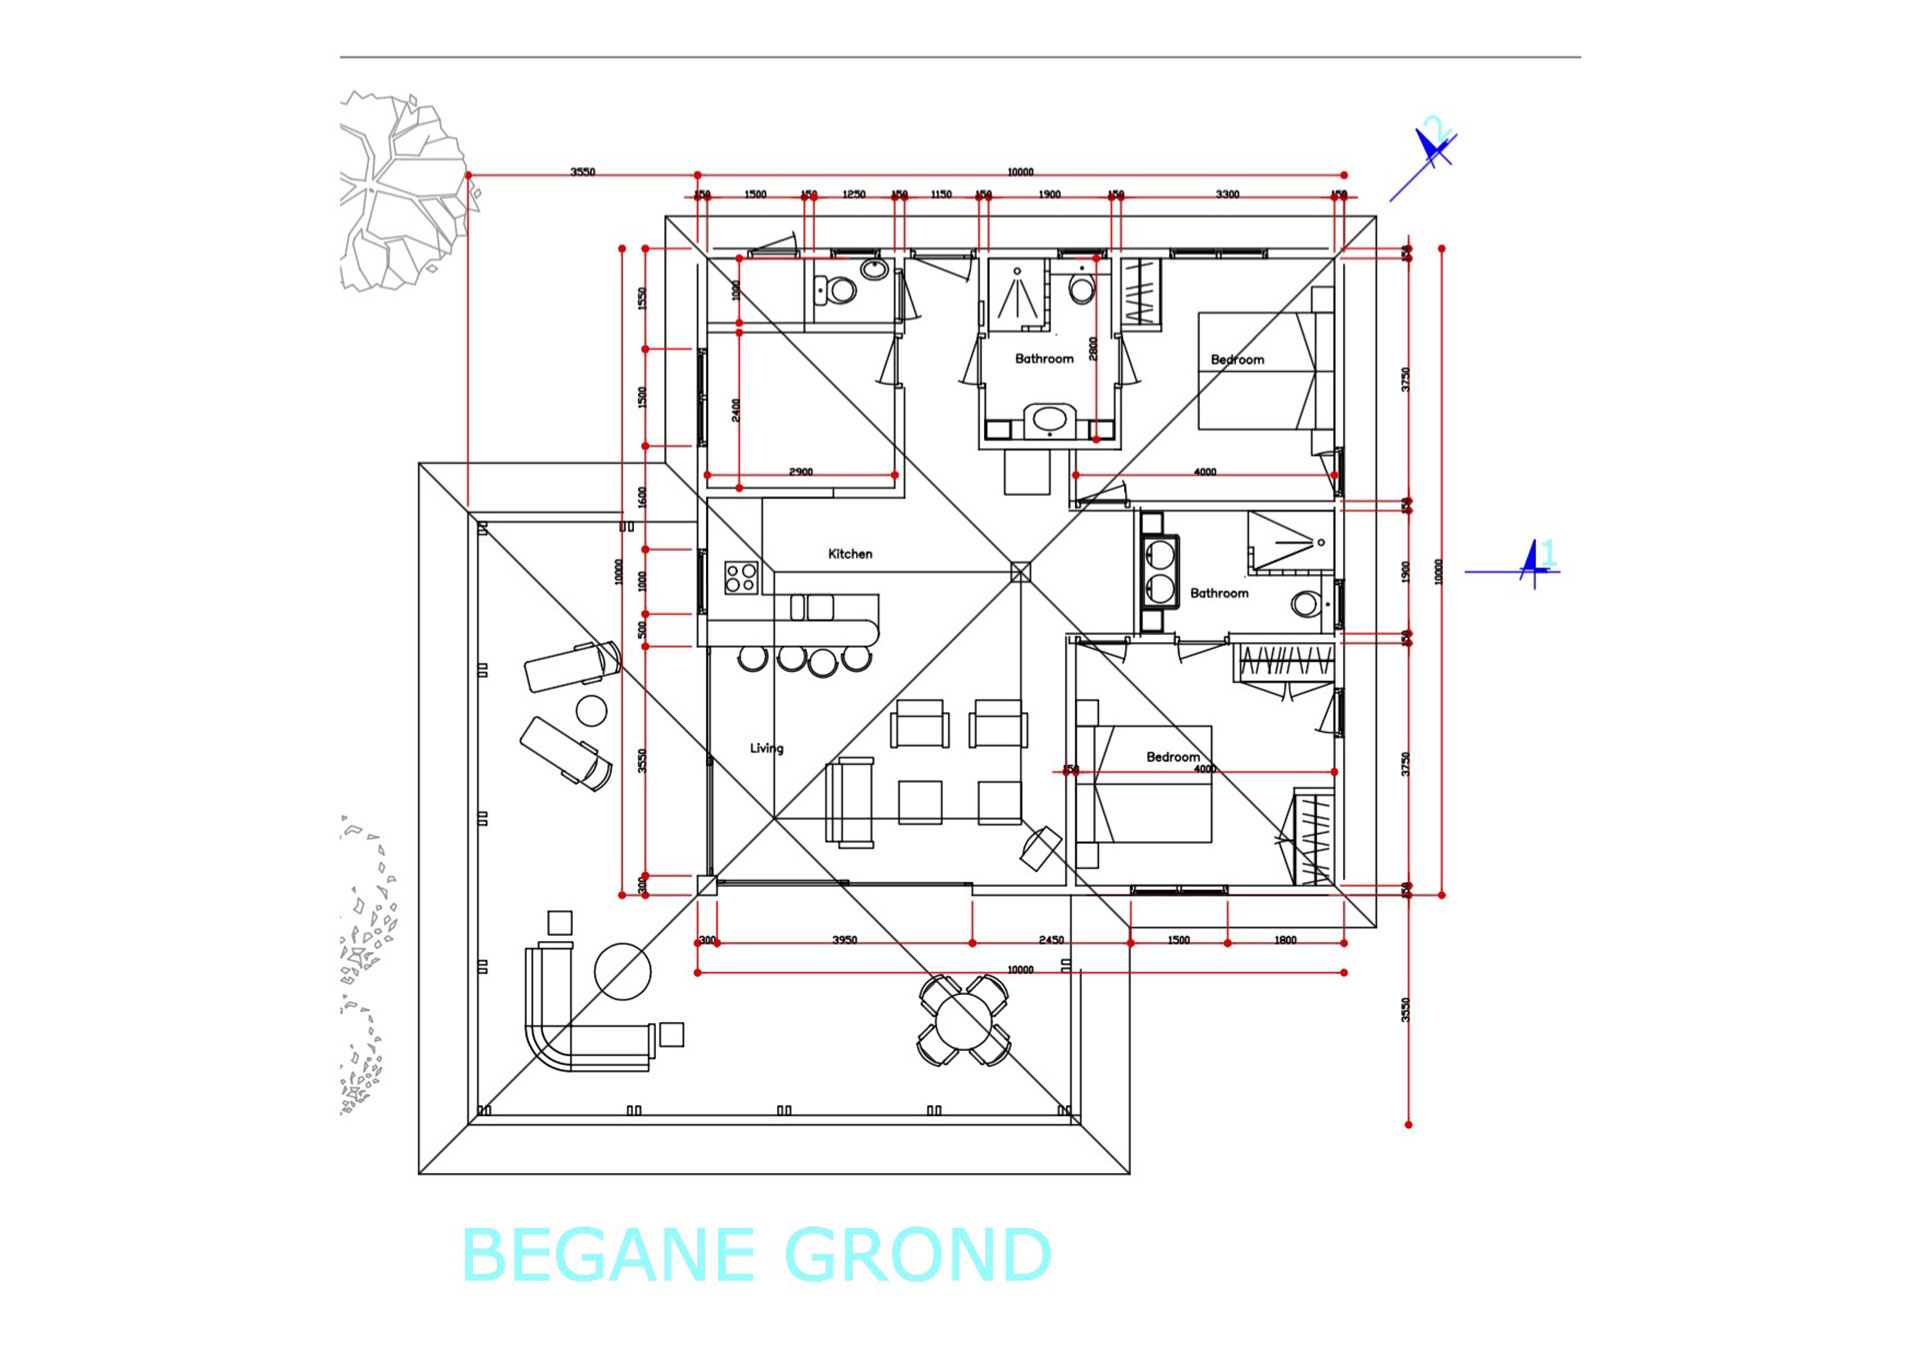 Caribbean House In Luxury Resort With Swimming Pools Beach Access Overhead Door Wiring Diagram Model Sdb 101 Previous Next